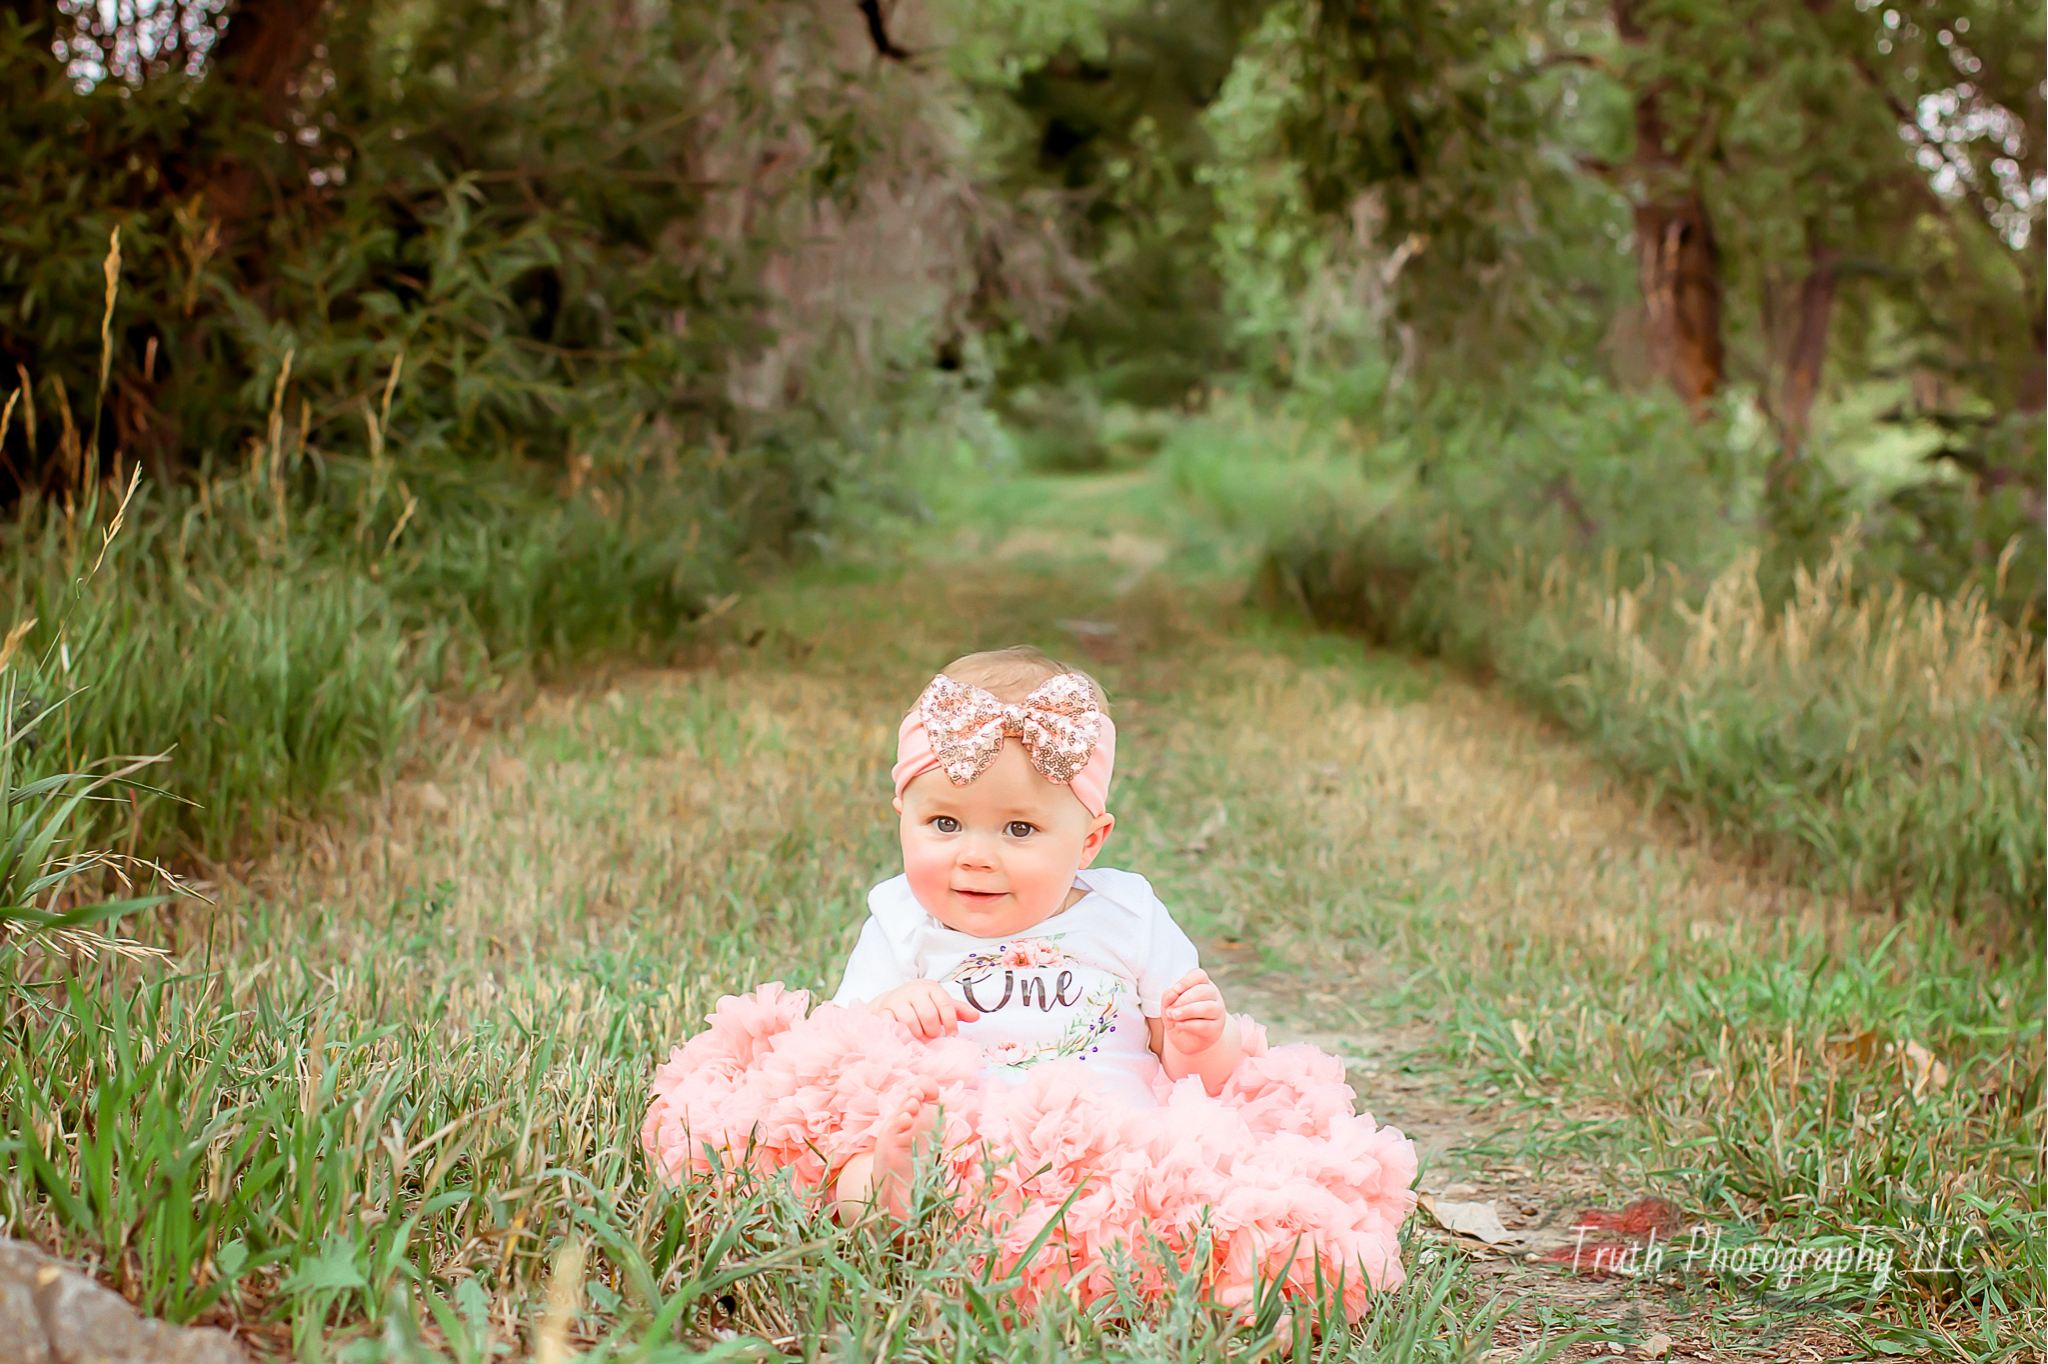 Truth Photography Westminster baby photography